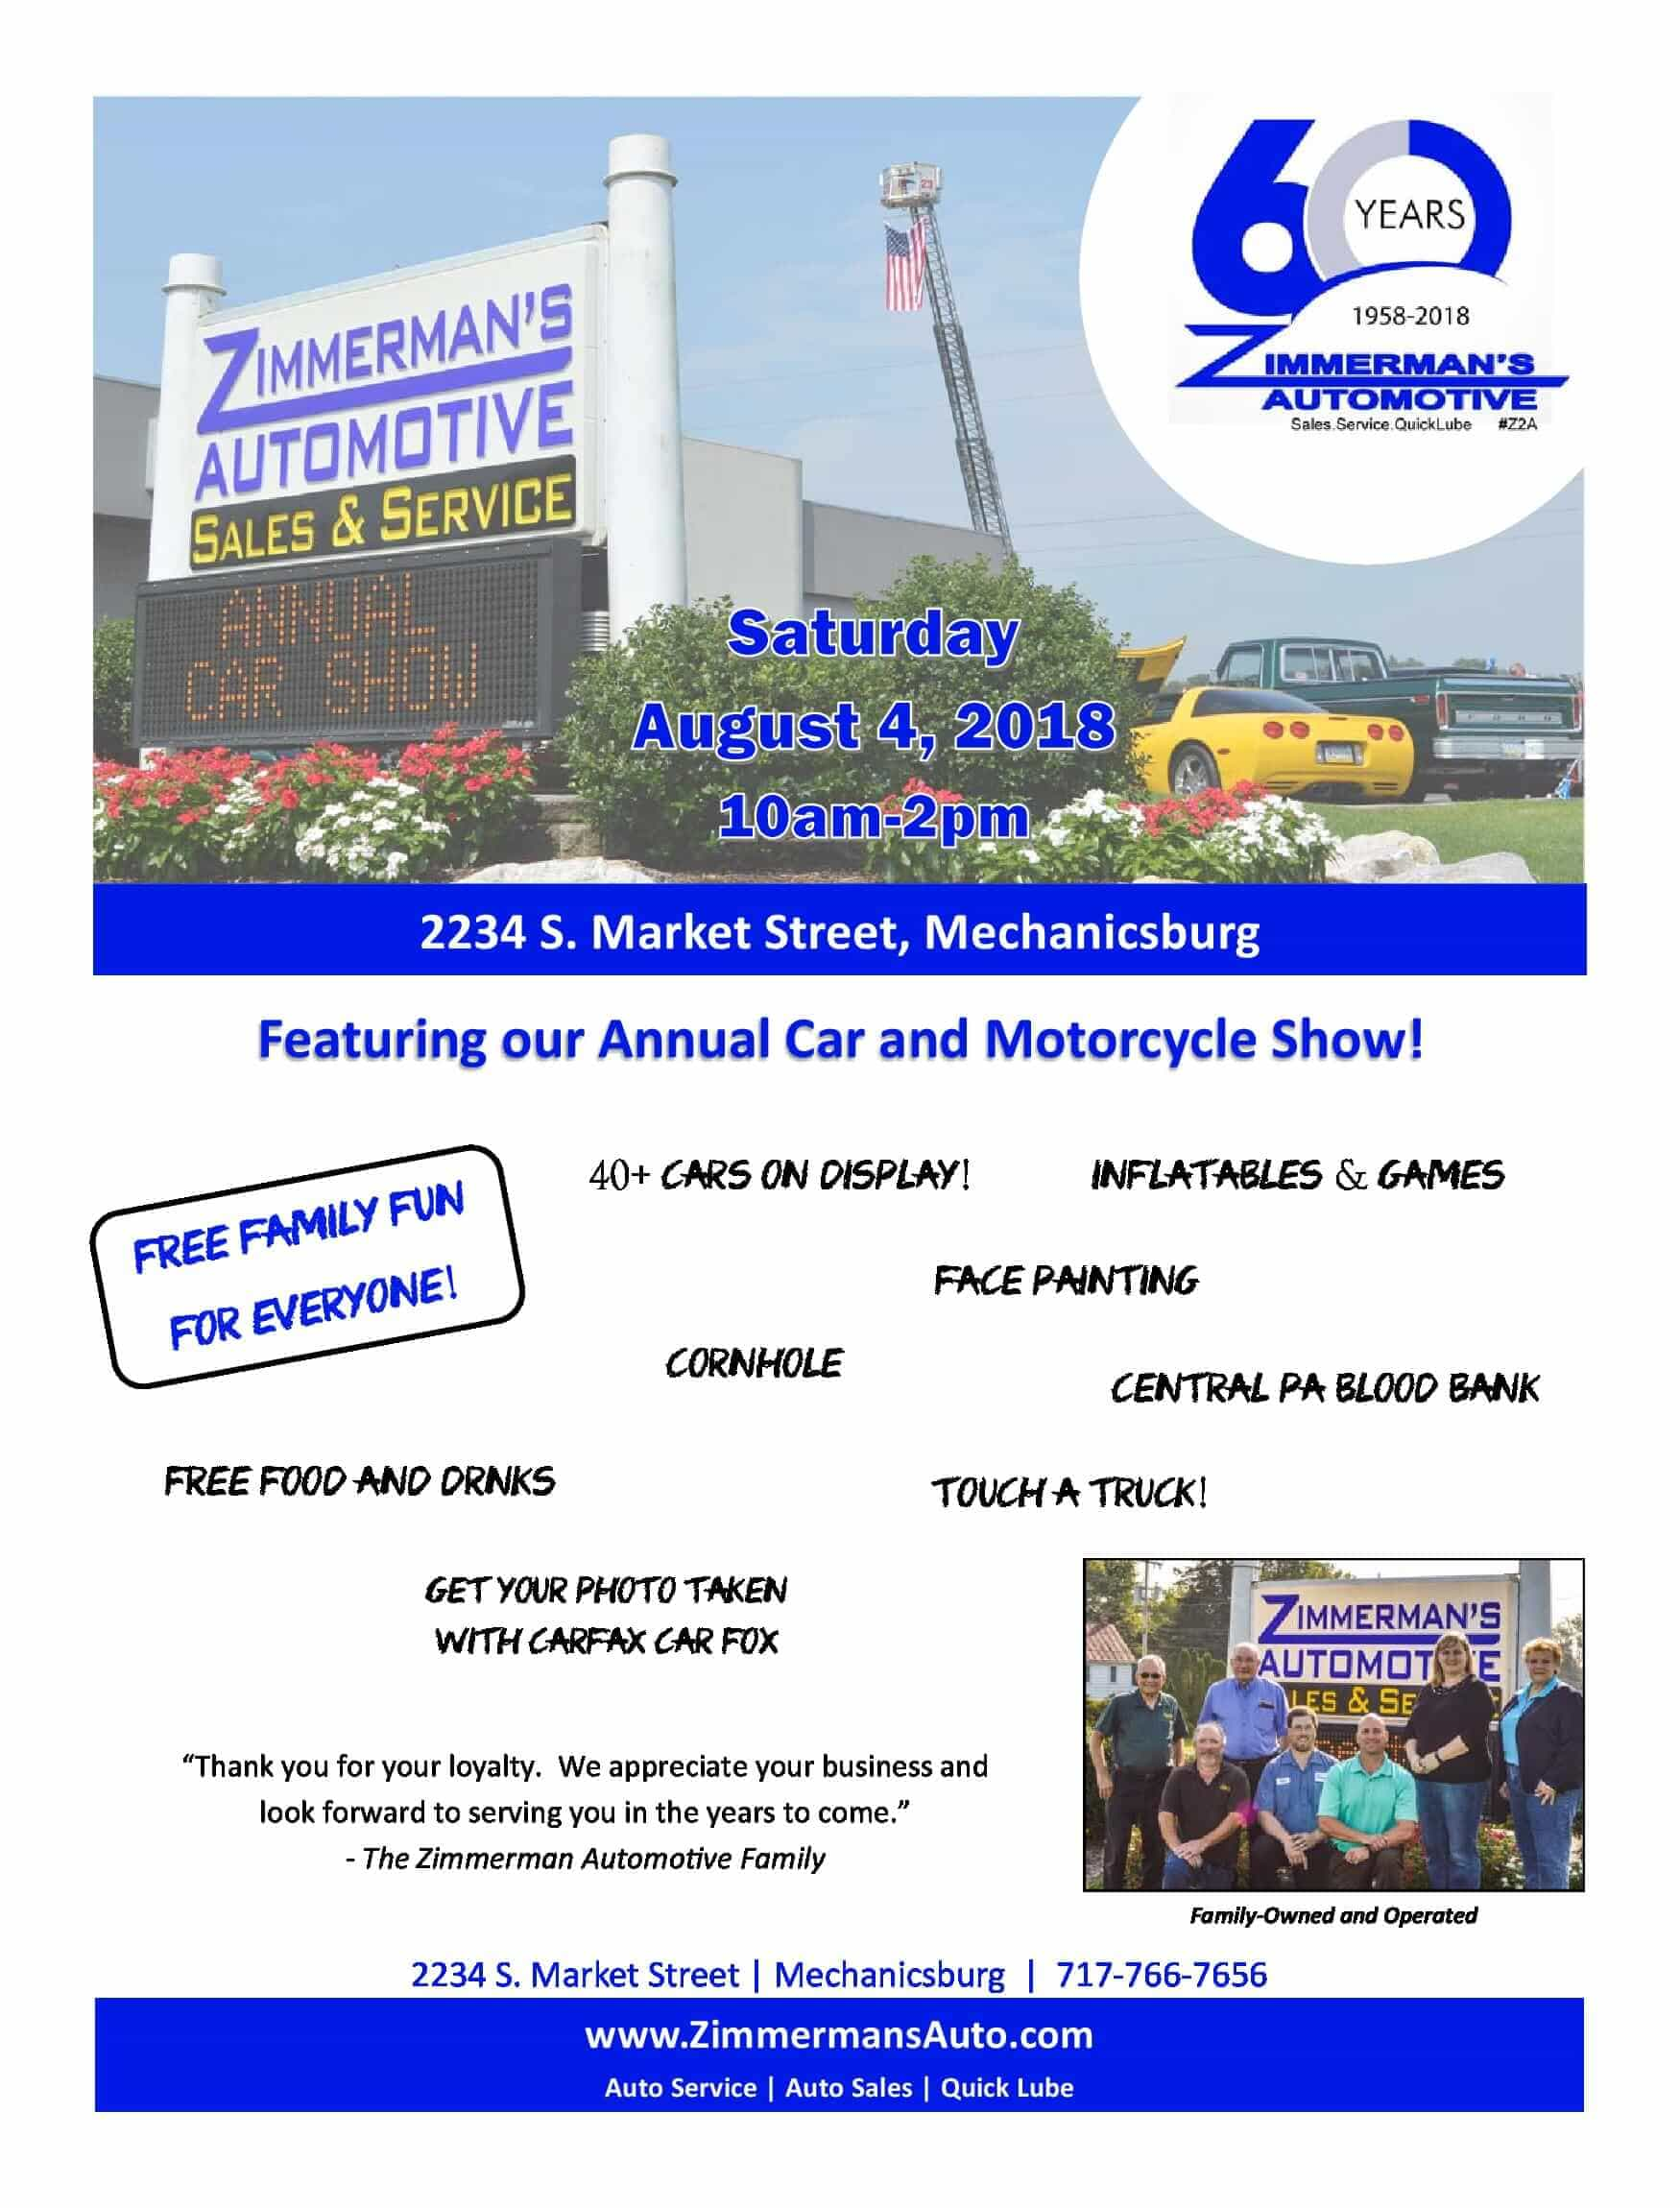 Annual Car and Motorcycle Show